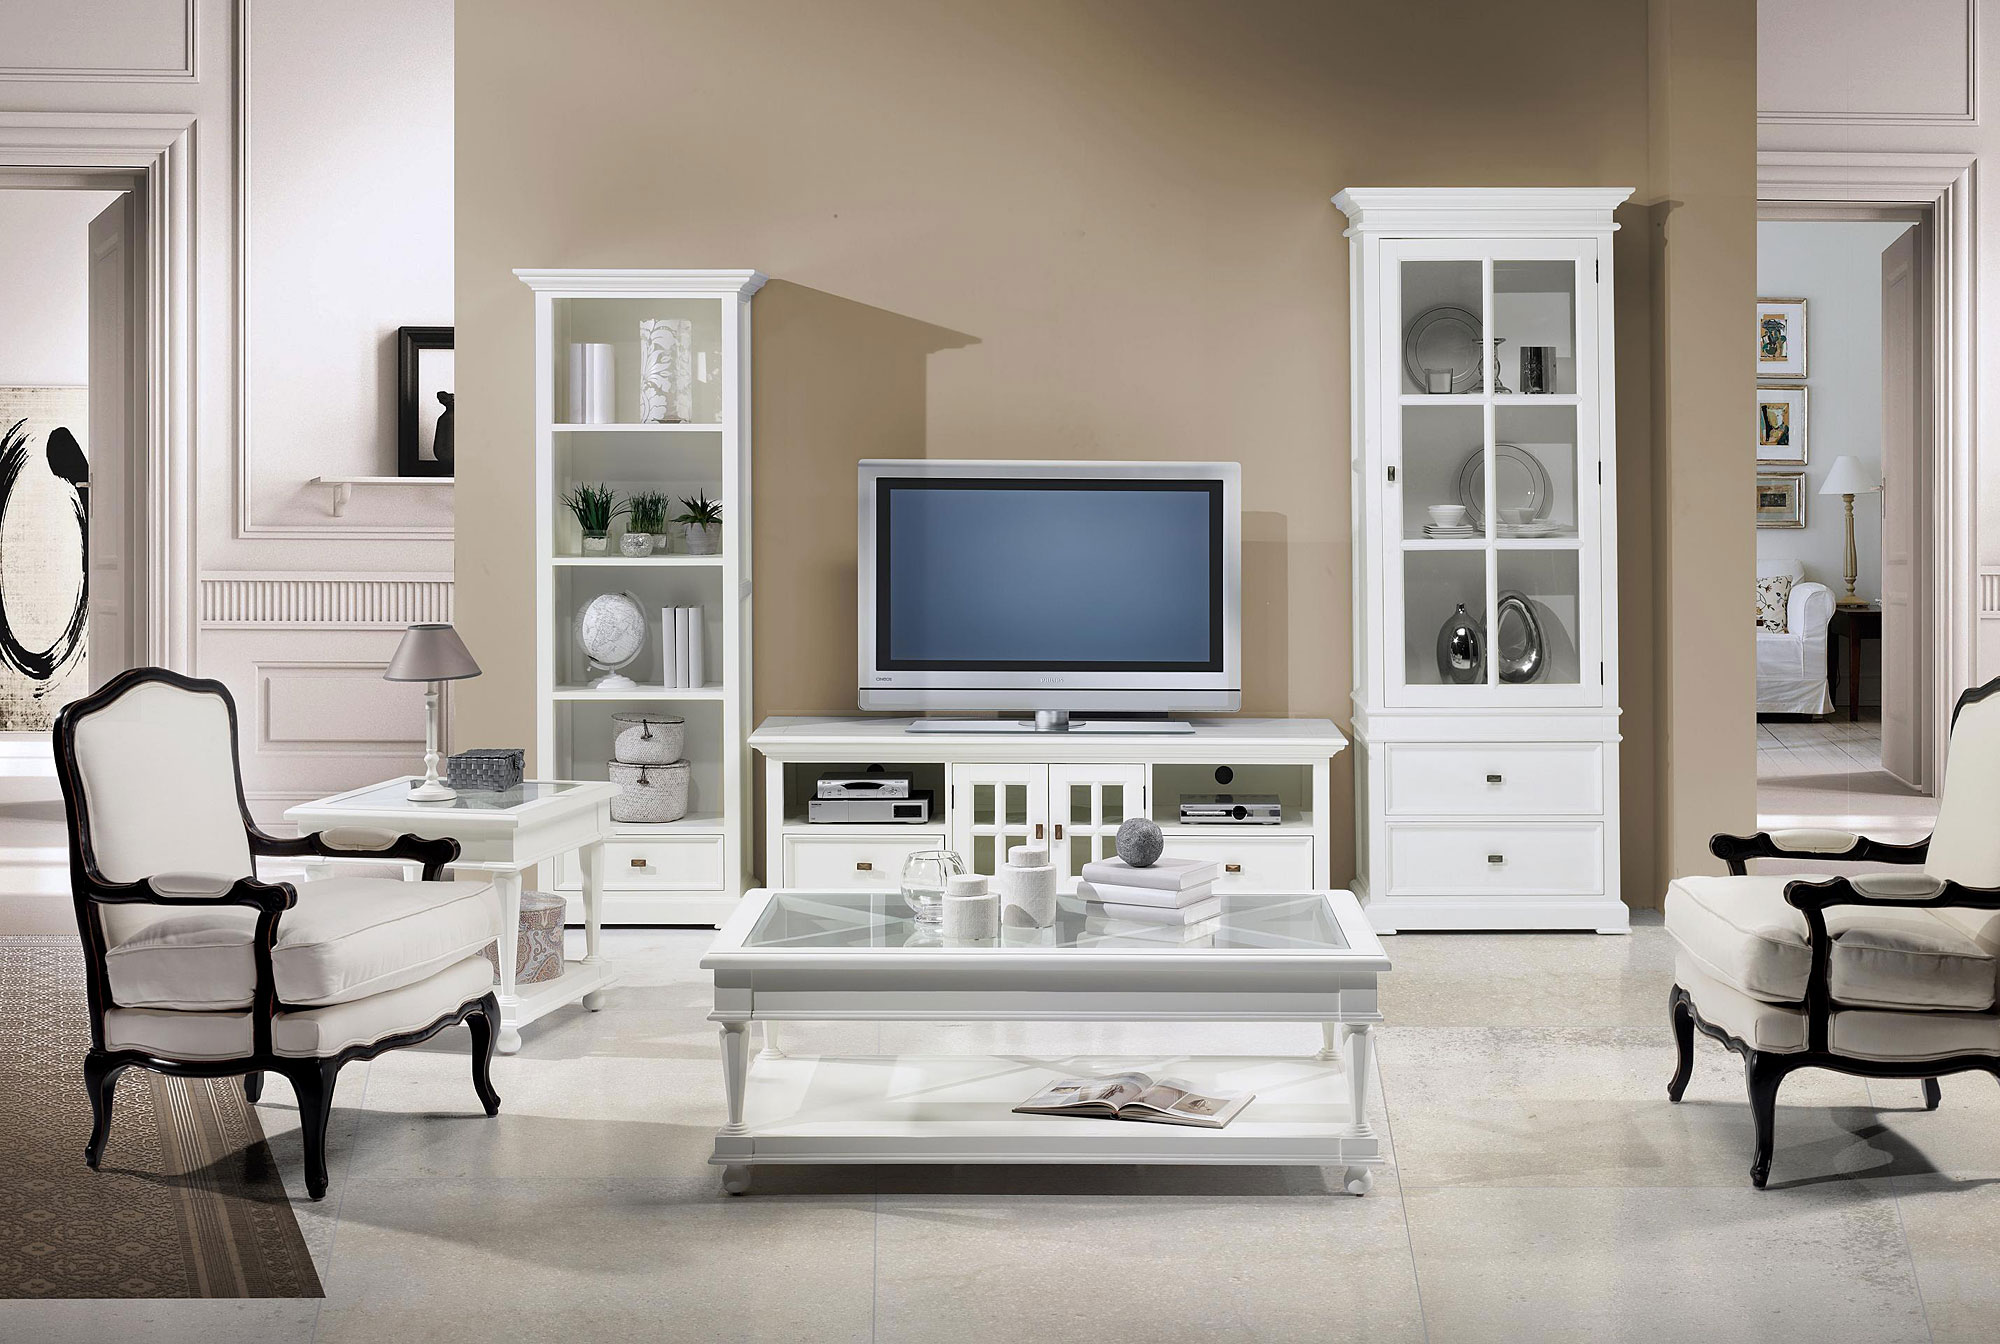 decoracion mueble sofa muebles salon blanco